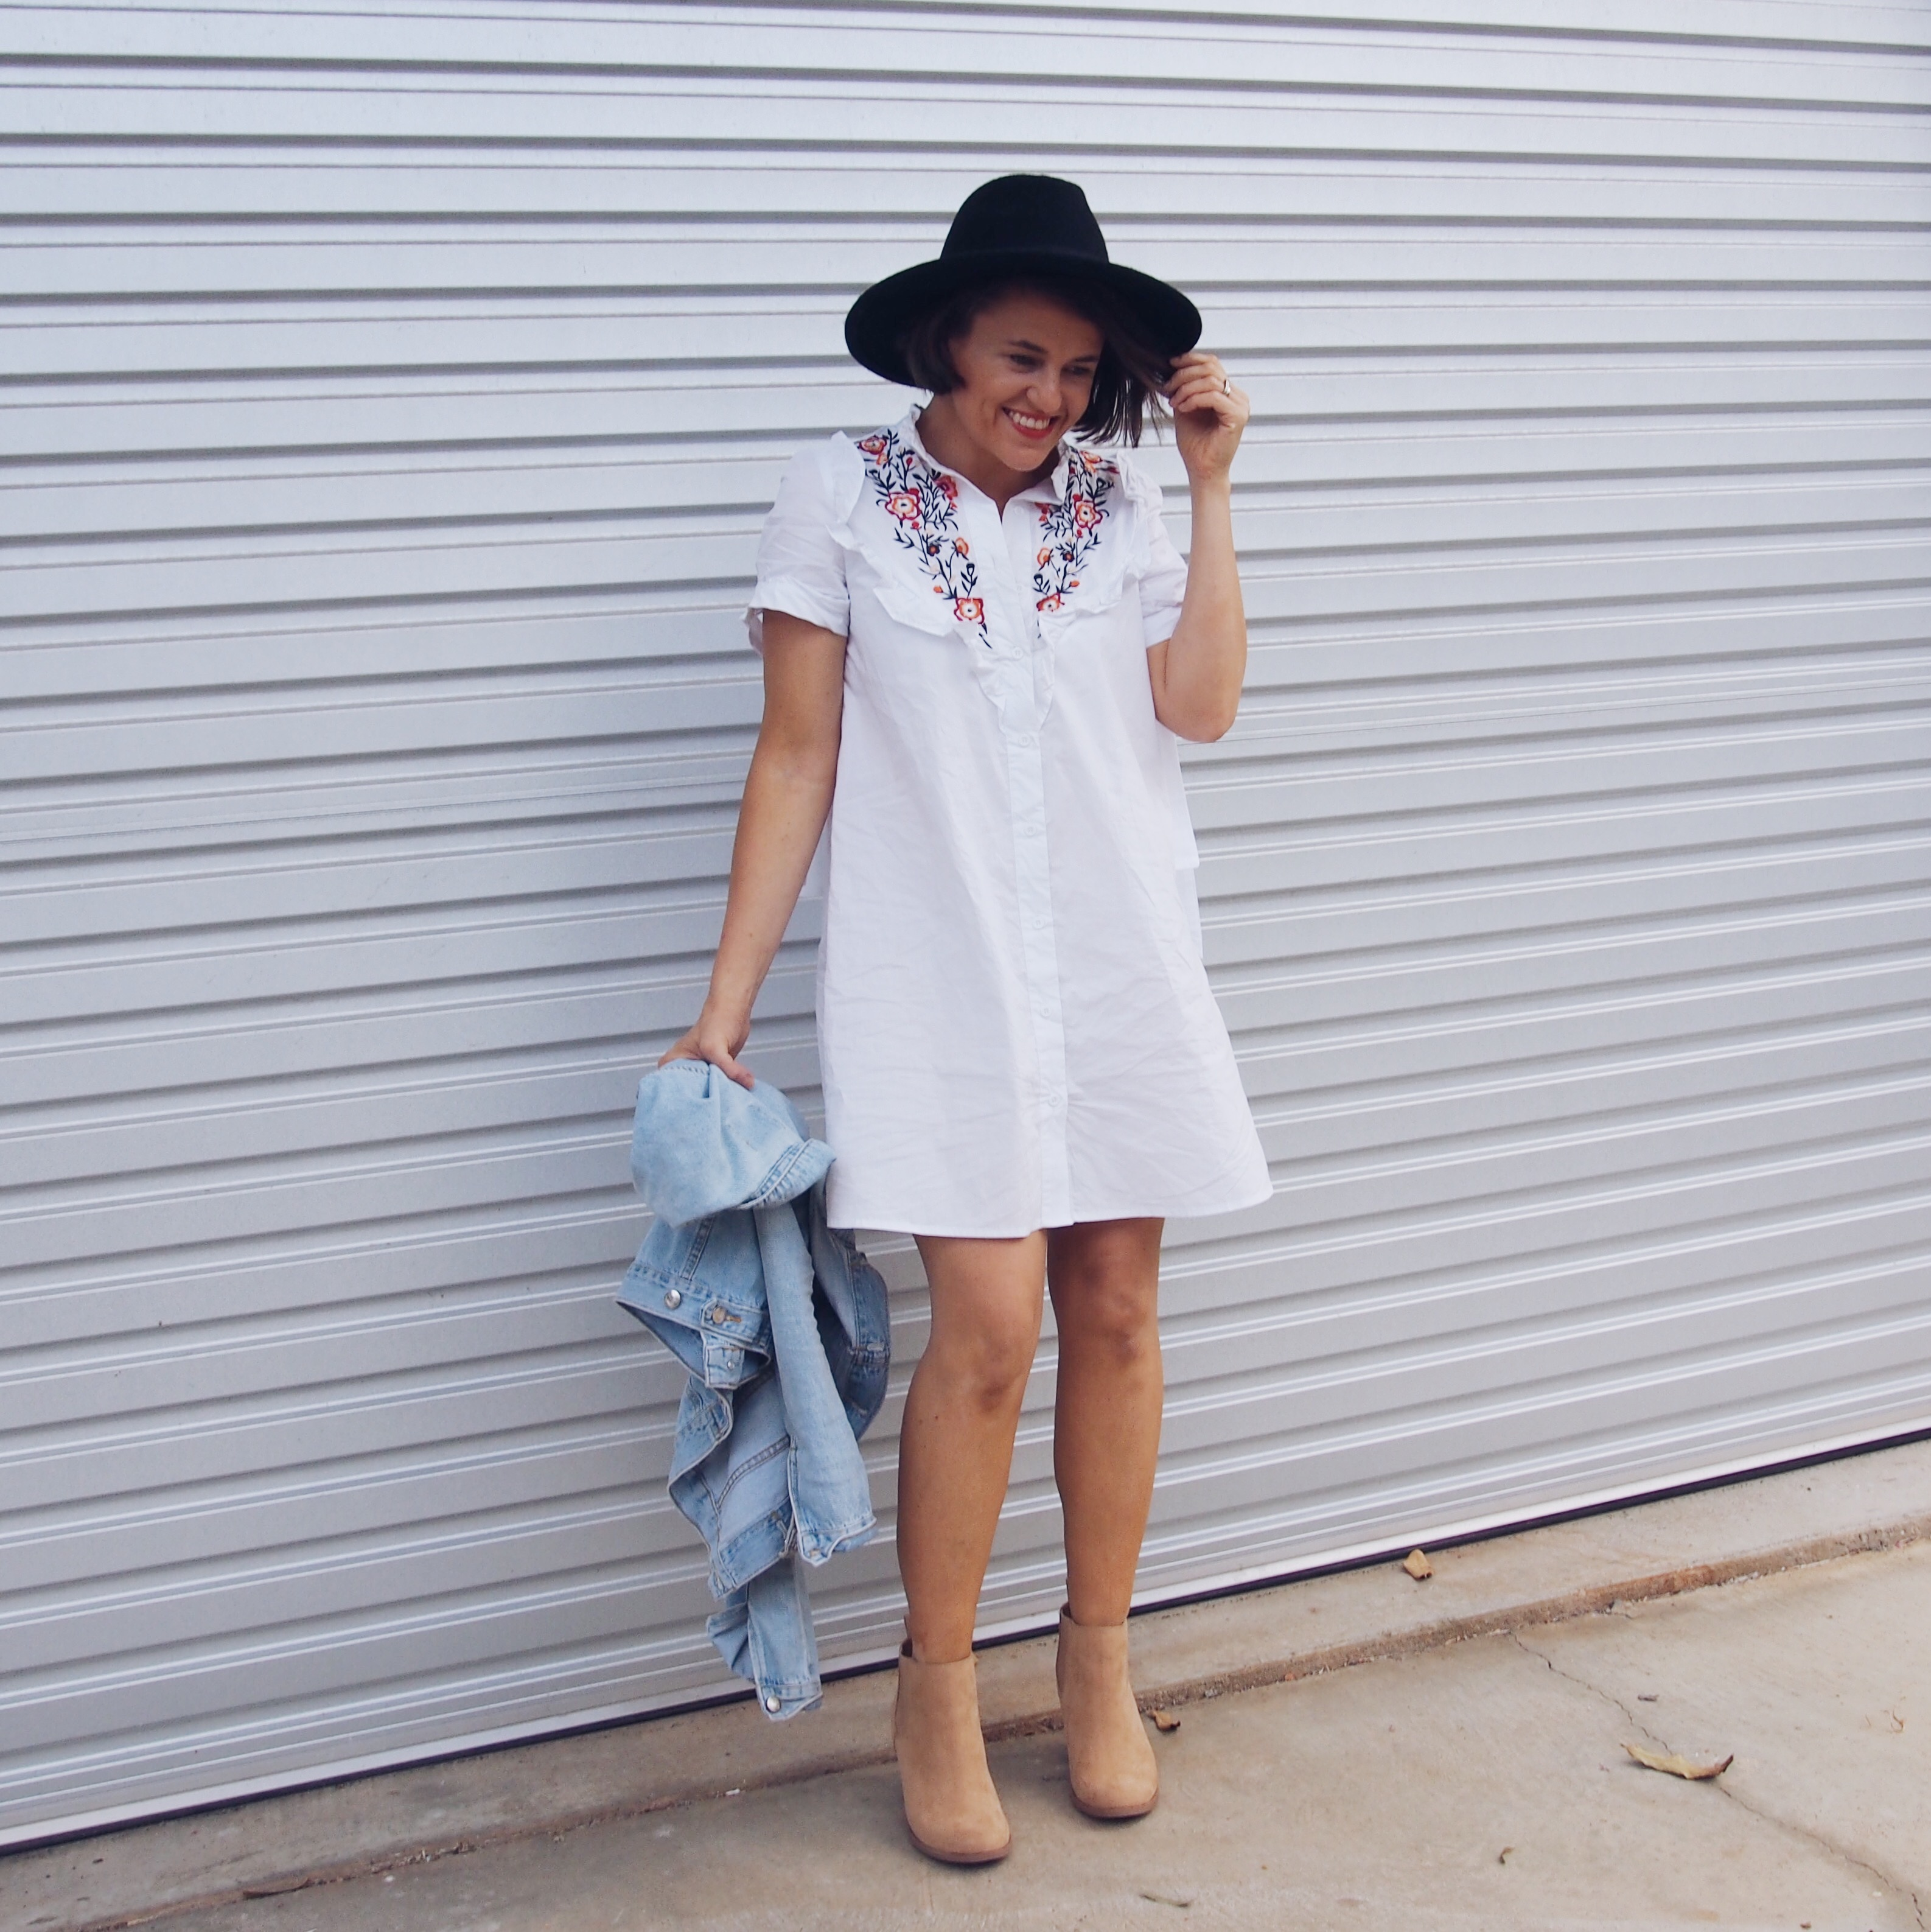 embroidered shirt dress and boots outfit